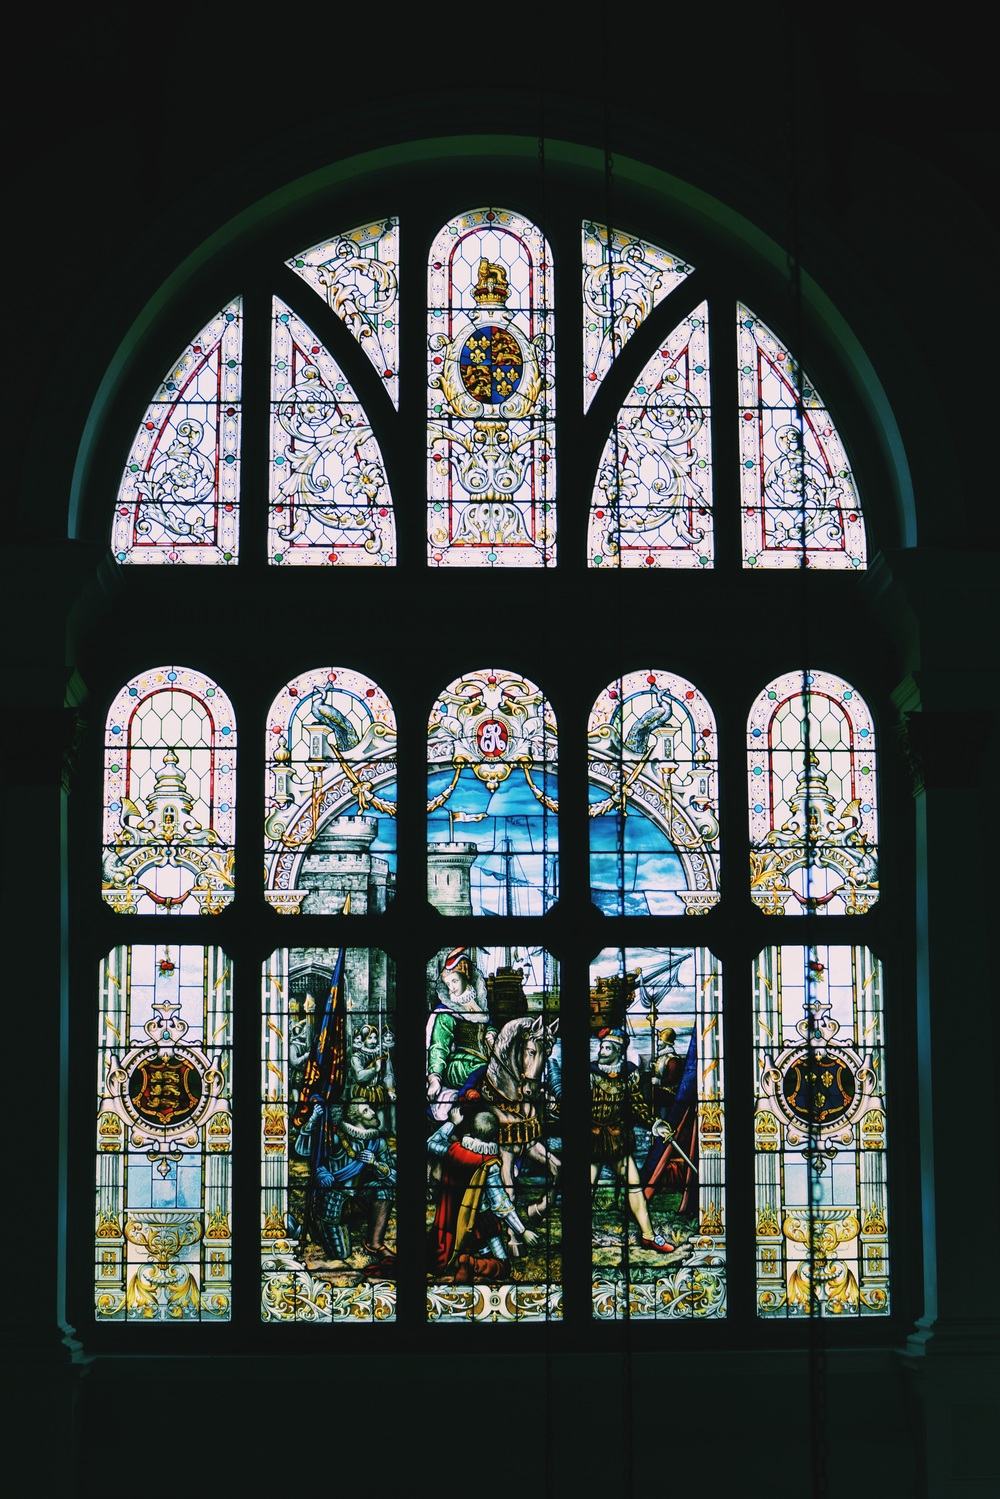 The stained glass window.